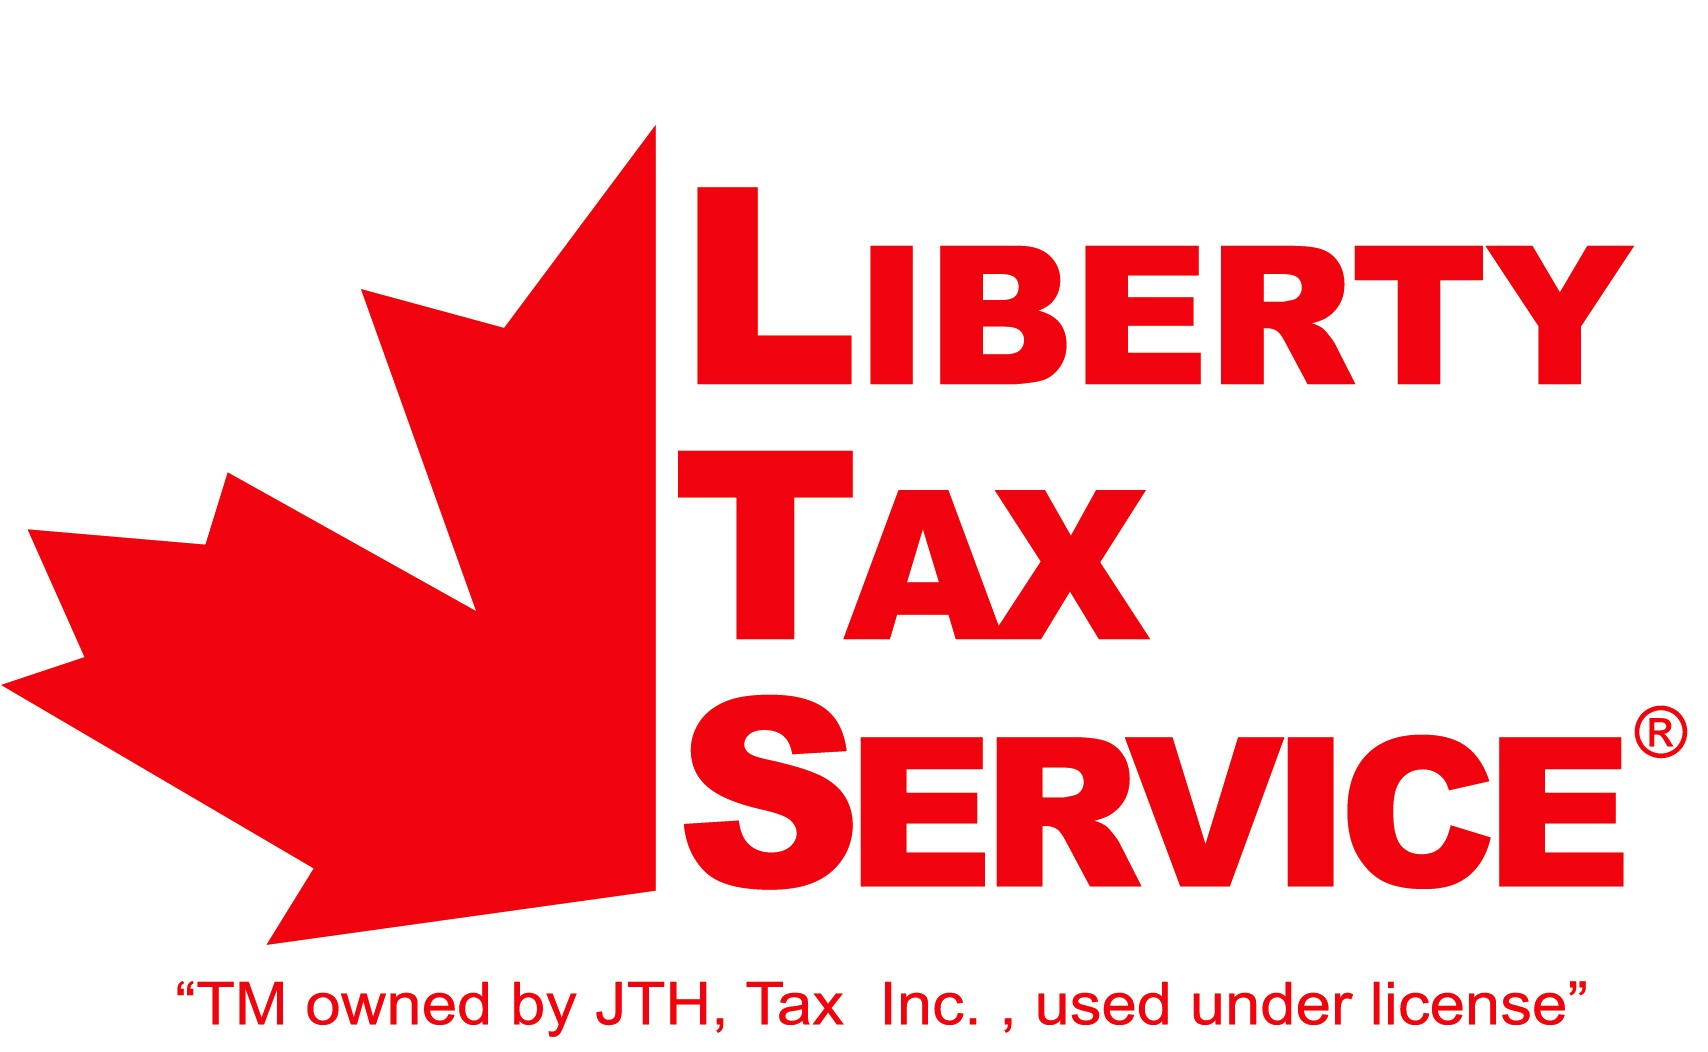 When an existing Liberty Tax client gives a Send-A-Friend certificate to a new Liberty customer, the new customer receives a $20 discount on paid tax preparation and the referring client receives $20 for each new referred customer who has their taxes prepared by Liberty.